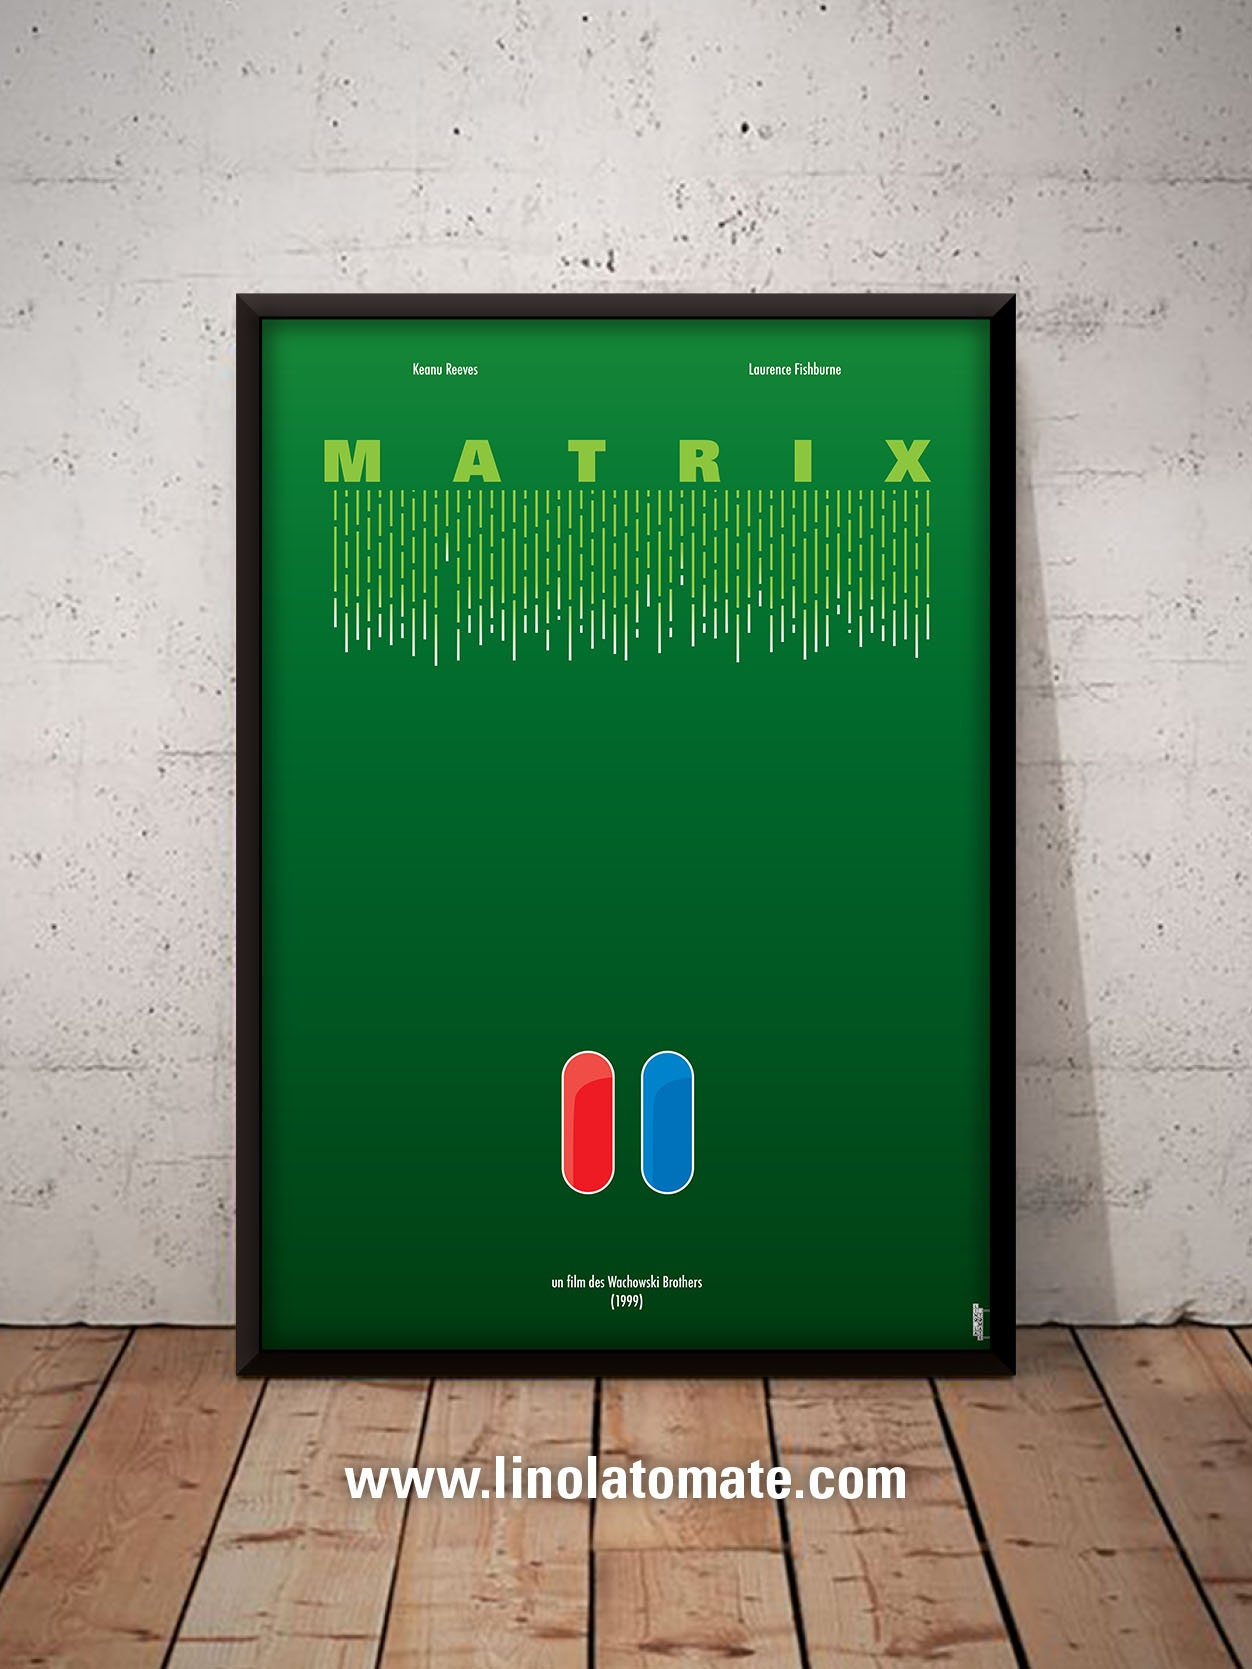 Matrix The Matrix L Affiche Revisit 233 E Par Lino La Tomate